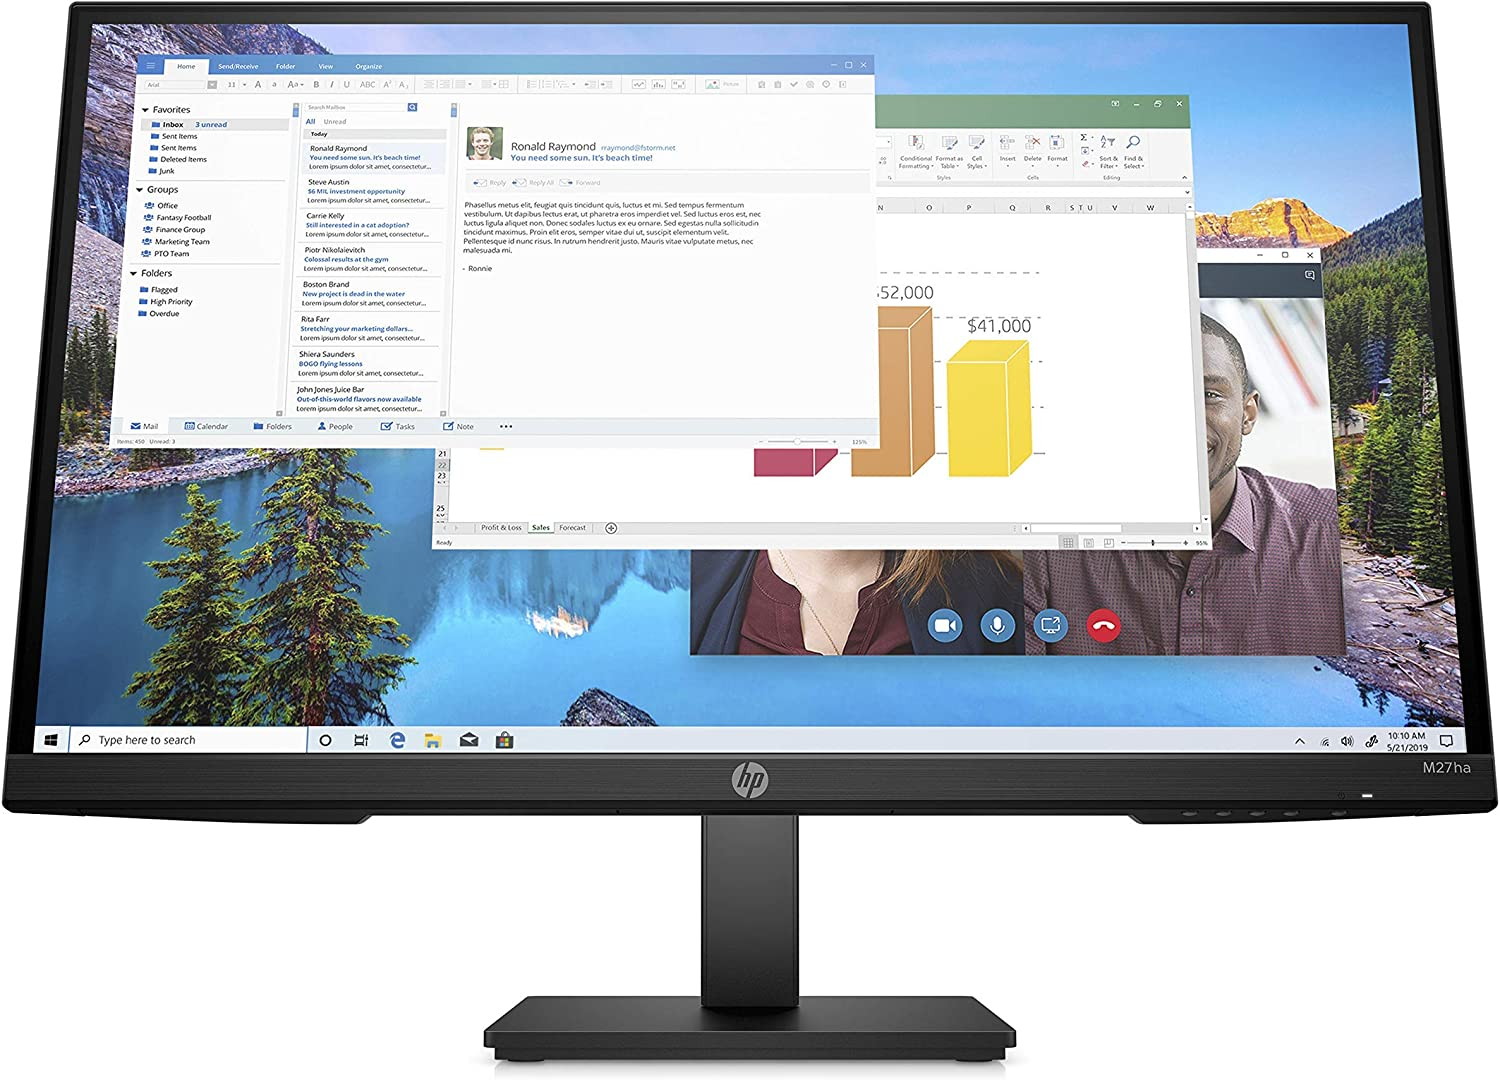 HP M27ha Full HD Monitor (1920 x 1080p) IPS Panel Built-in Audio VESA Compatible 27-inch Monitor Designed for Comfortable Viewing with Height and Pivot Adjustment - (22H94AA#ABA) (Renewed)